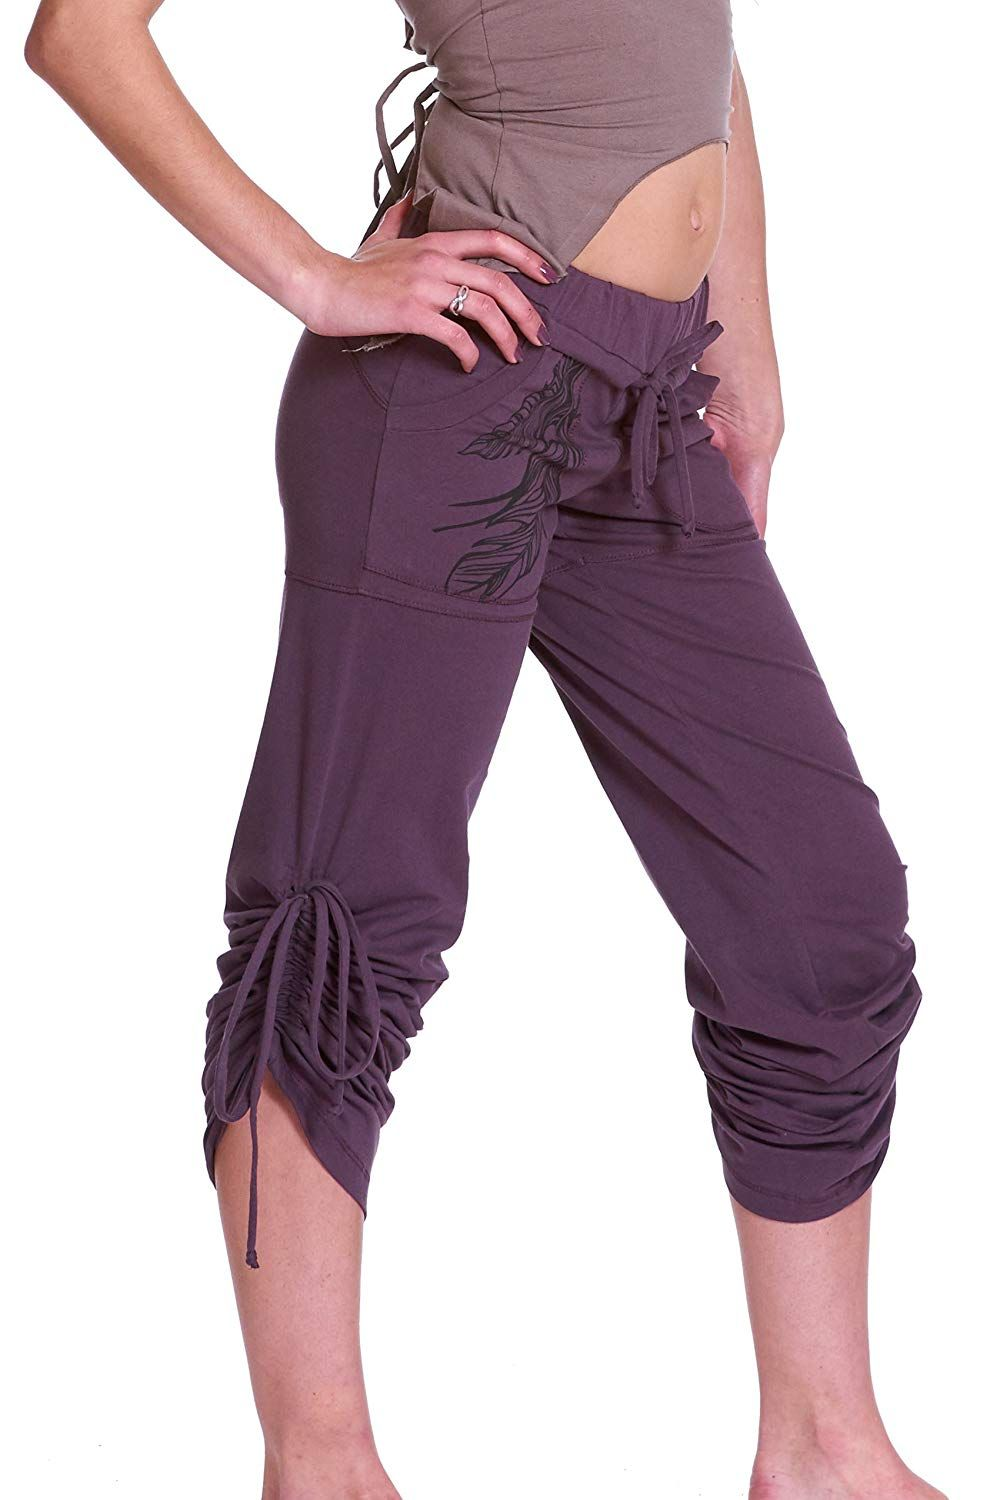 2b9115bb41 Organic Yoga Pants, Organic Cotton Leggings, Hoop Wear, Feather Print Two- Way